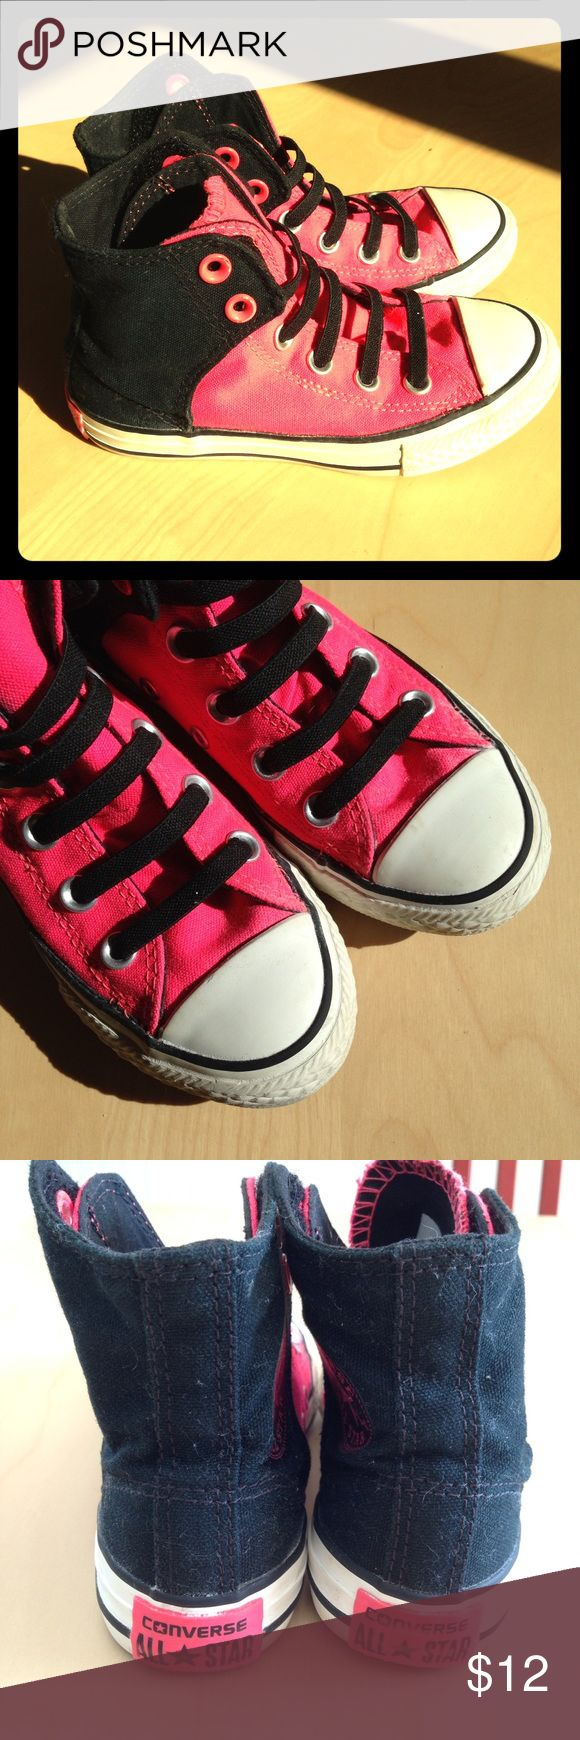 Pink & black Hi top slip on Converse All Stars EUC. Bright fluorescent pink and black with black elastic laces. Velcro closures. Some slight scuff marks, but very few. Soles are perfect! Converse Shoes Sneakers